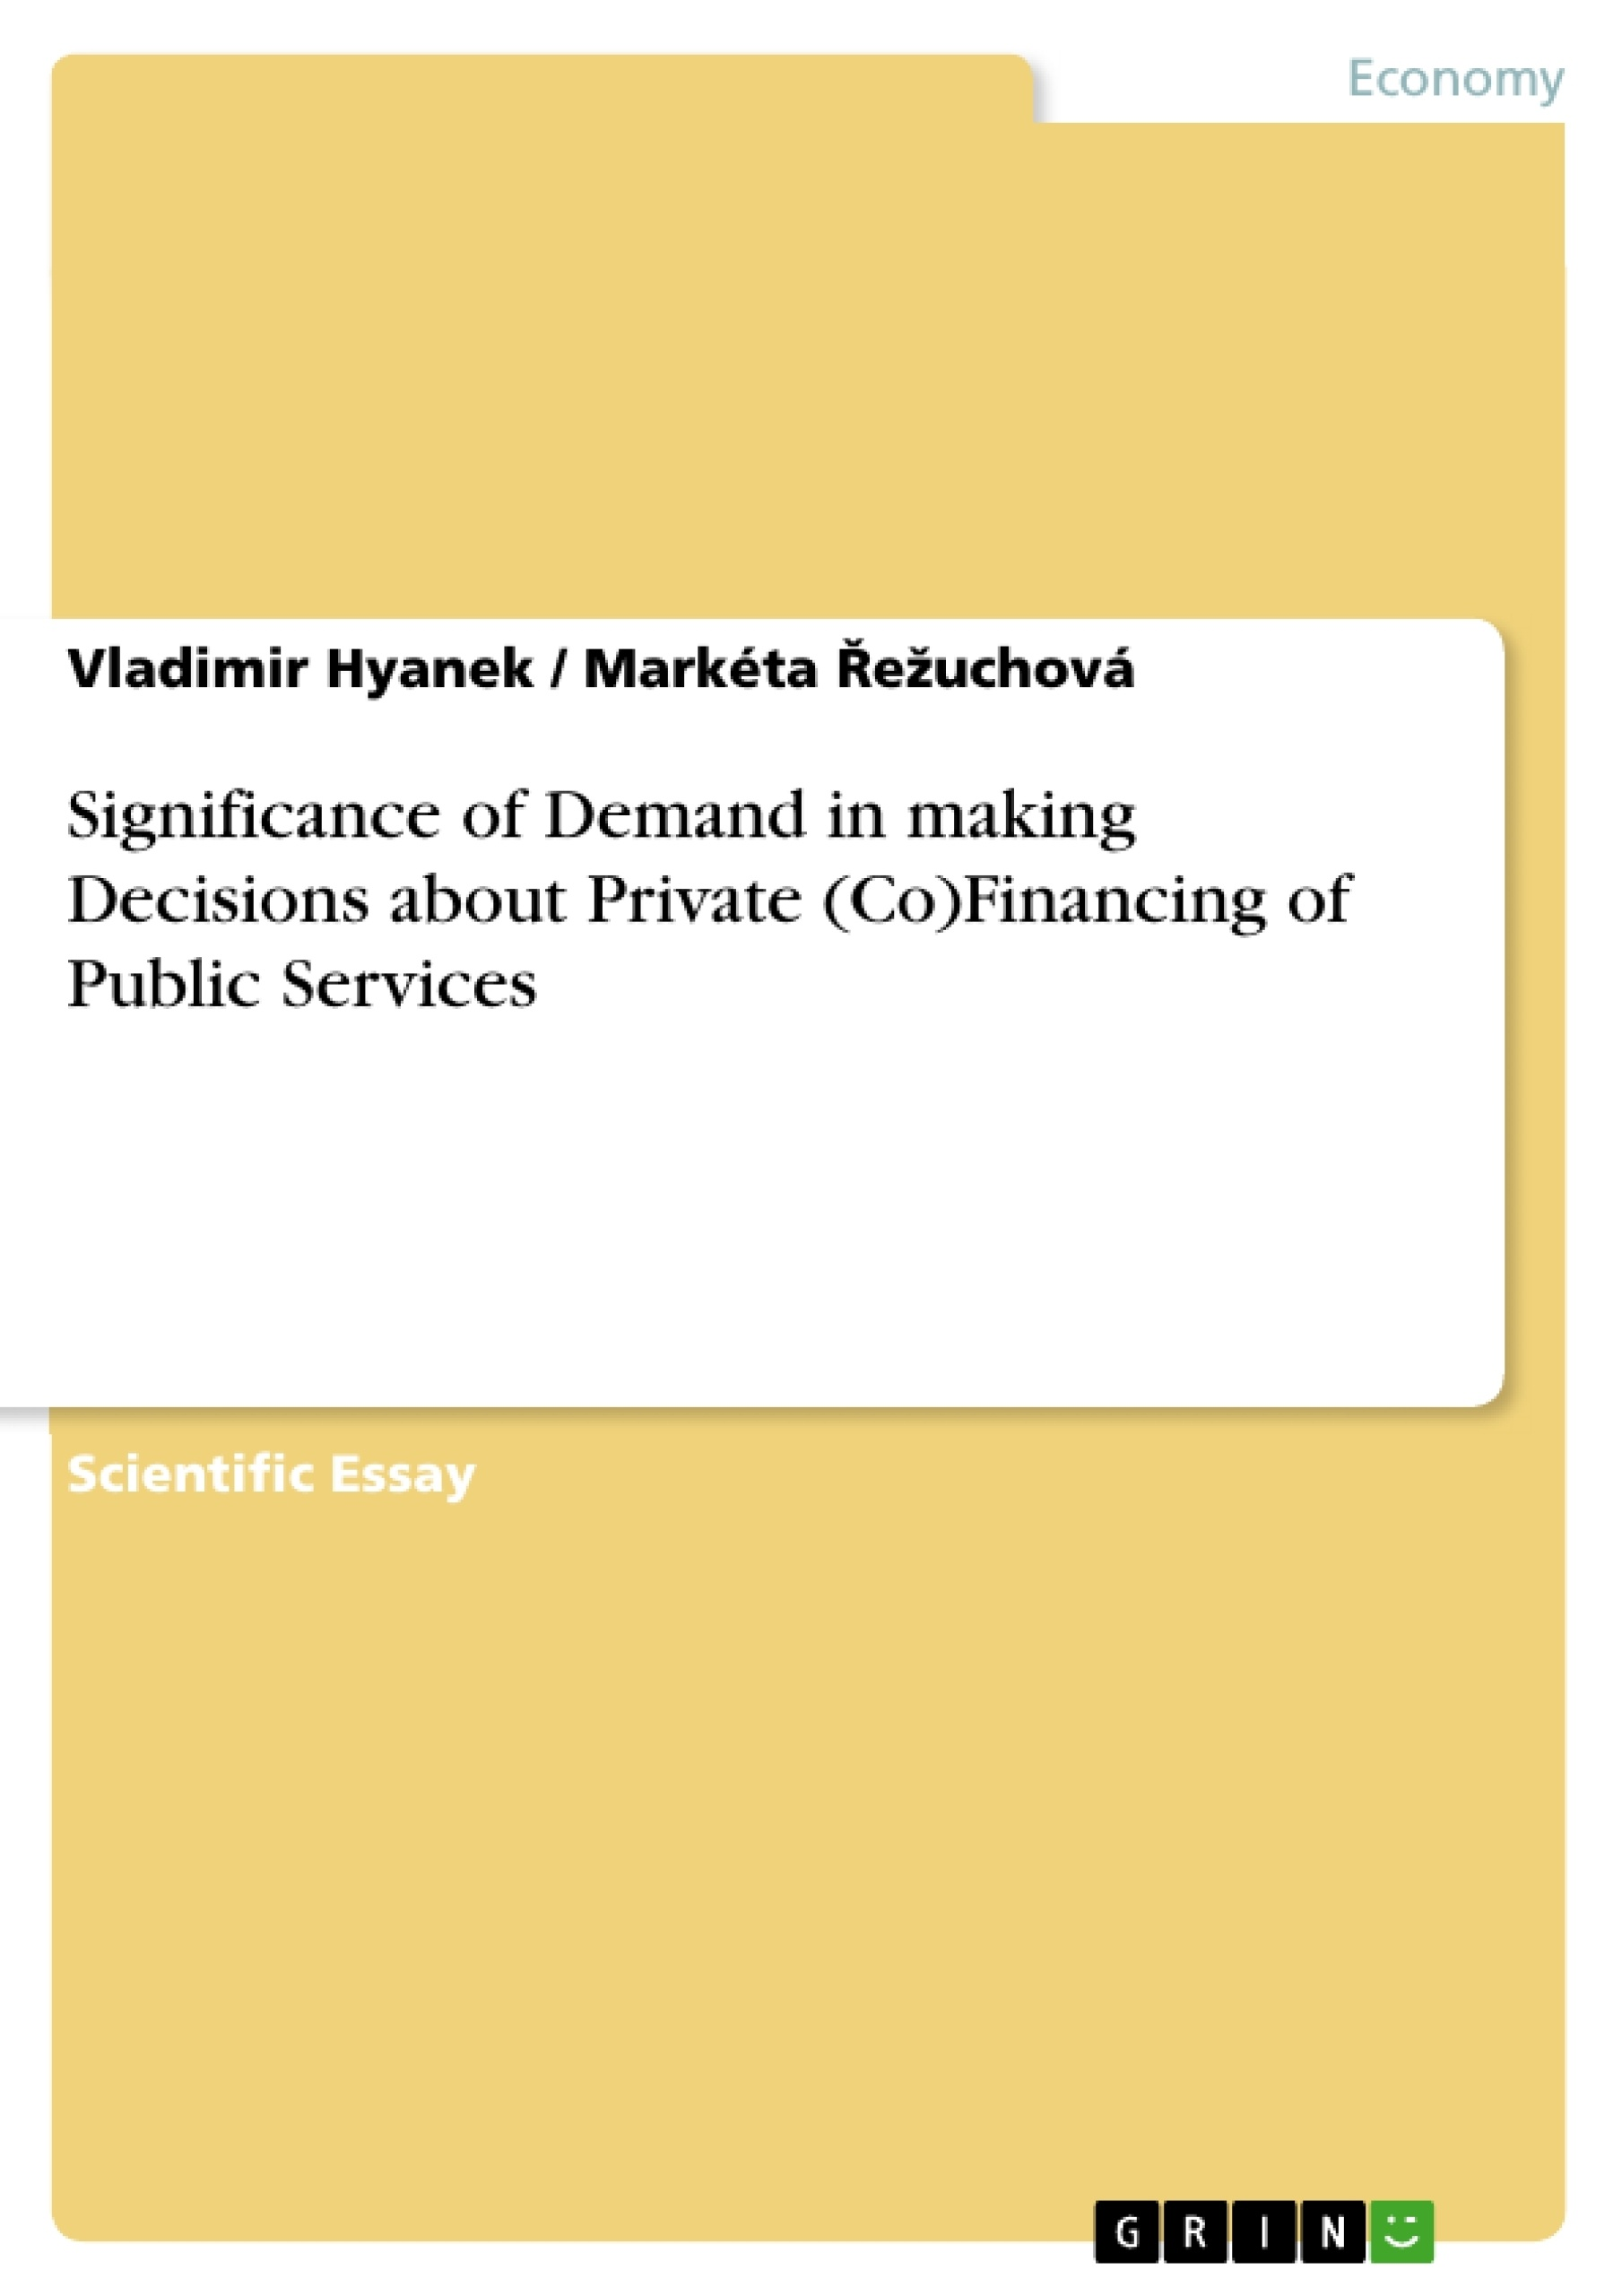 Title: Significance of Demand in making Decisions about Private (Co)Financing of Public Services